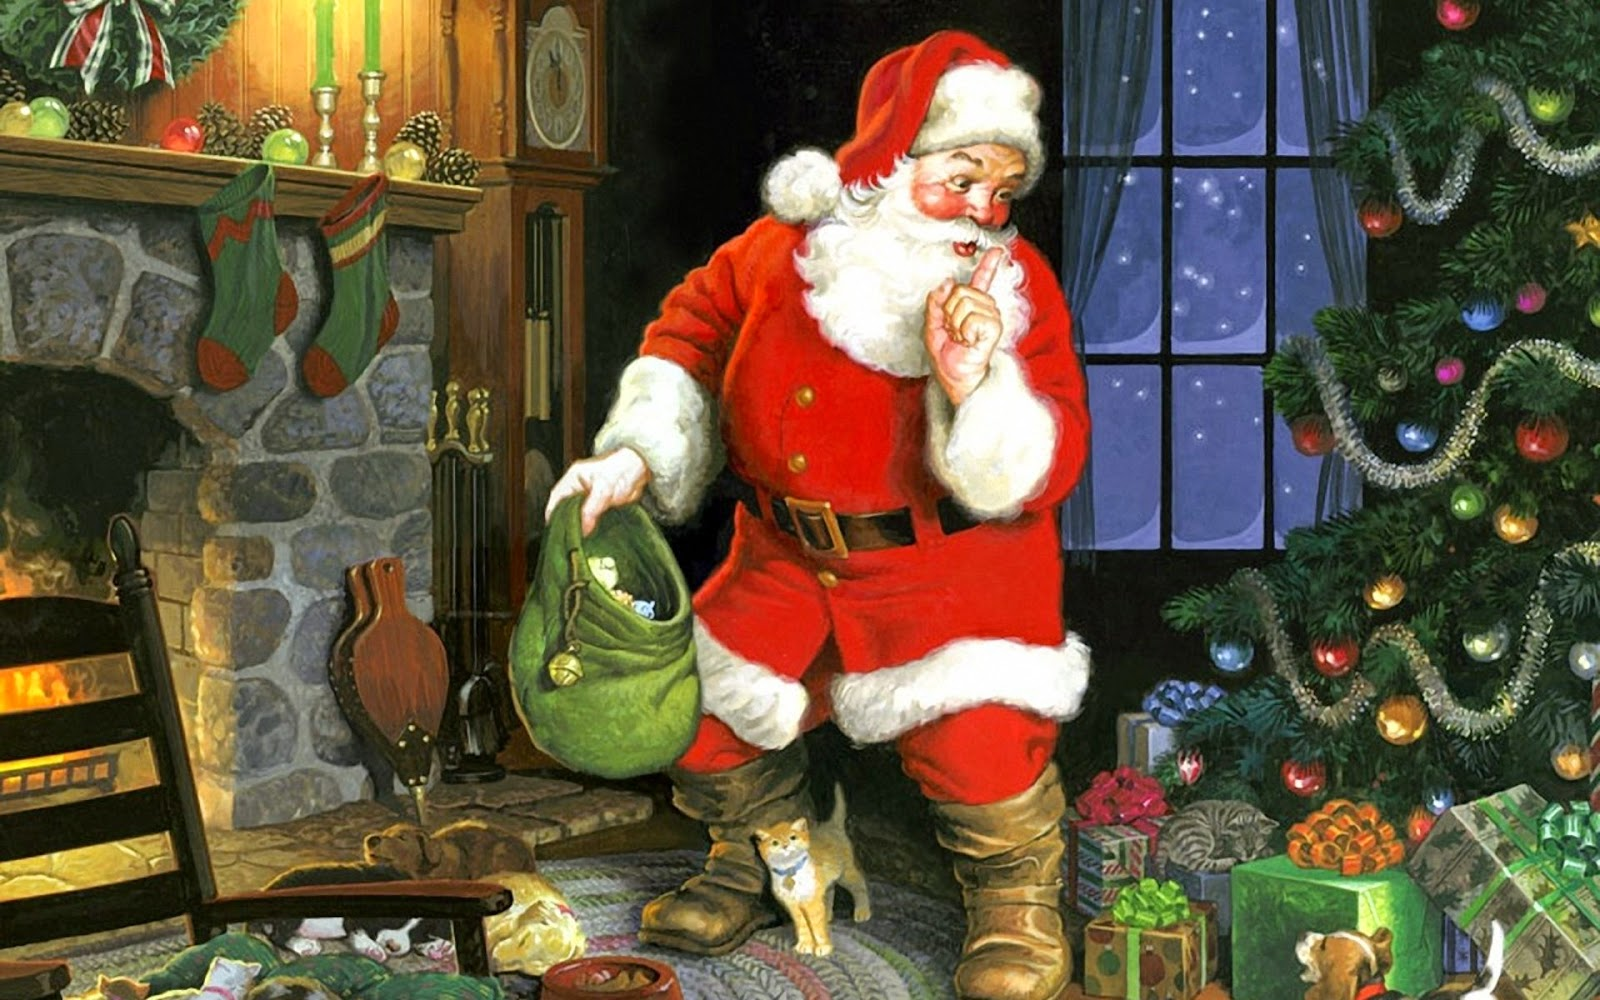 santa-claus-shh-secretly-placing-gifts-near-fireplace-xmas-tree-image-cartoon-drawing-for-kids.jpg